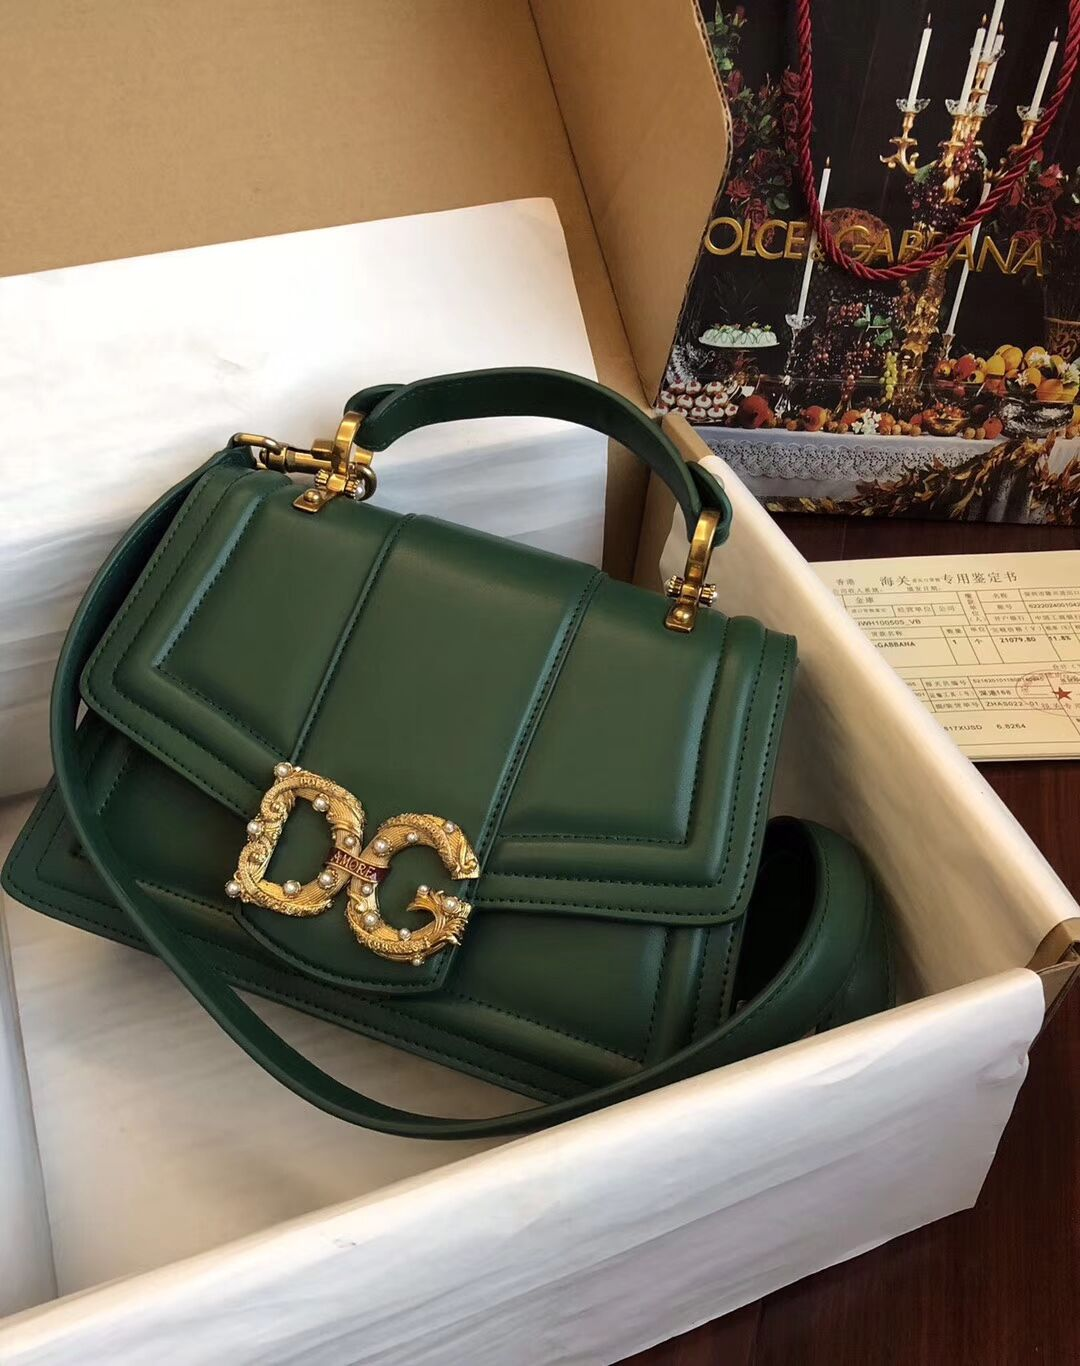 Dolce & Gabbana Origianl Leather Bag 4916 Green